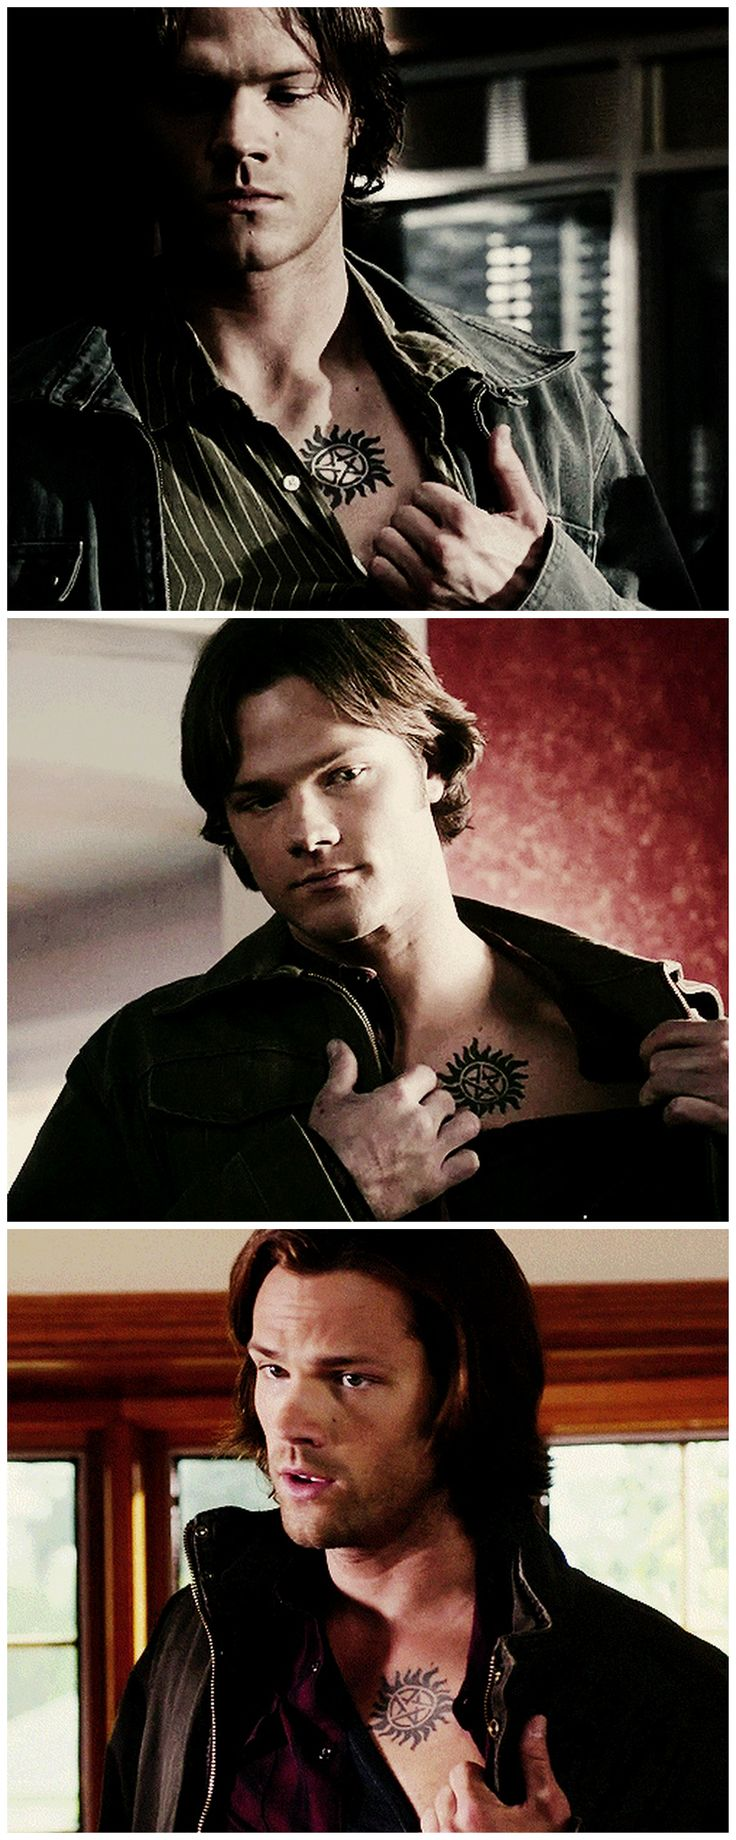 [gifset] Sammy reluctantly showing his tattoo to other people. 3x12Jus In Bello, 4x18 The Monster At The End Of The Book, 8x02 What's Up, Tiger Mommy? #SPN #Sam